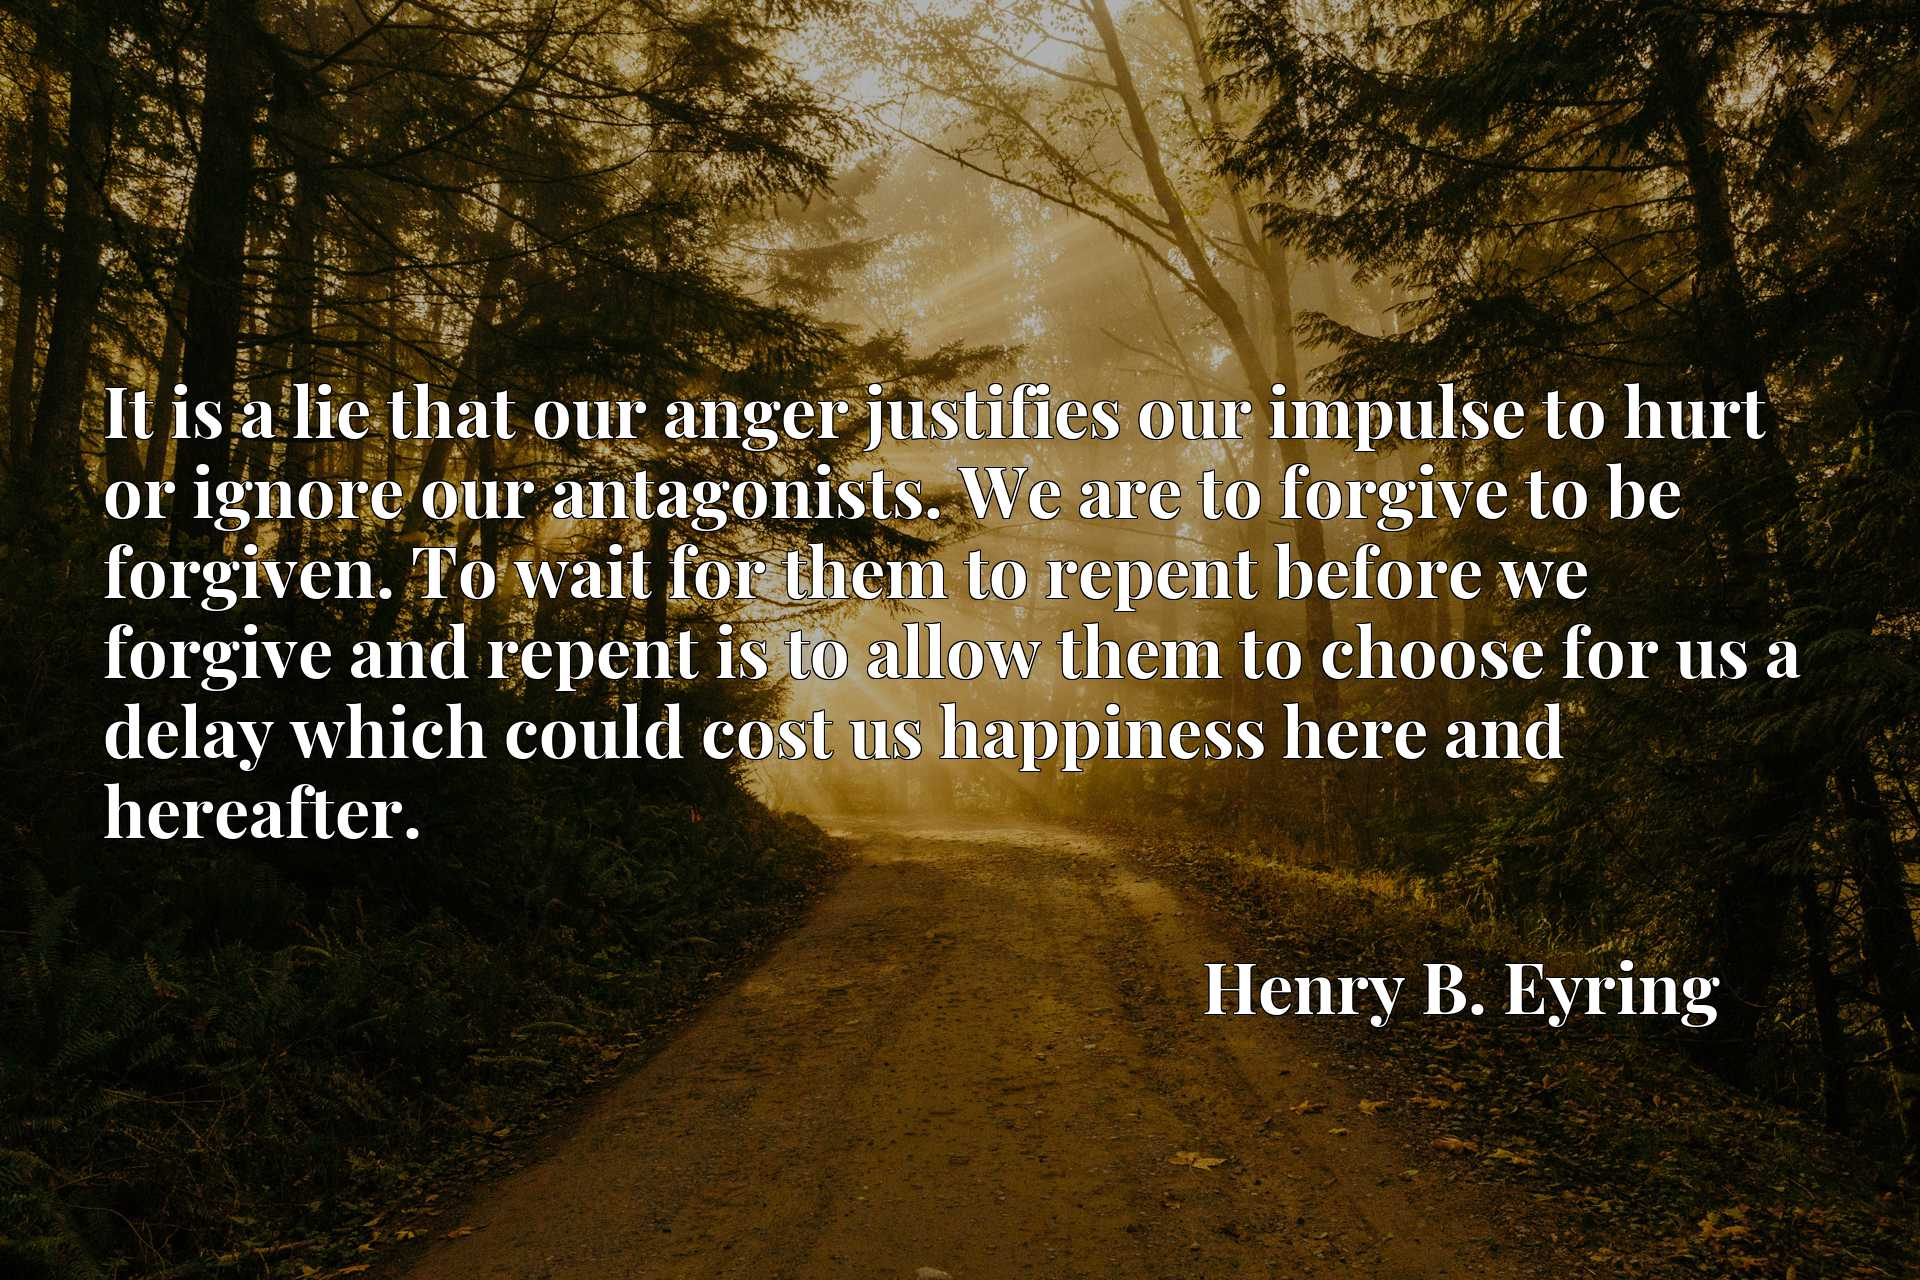 It is a lie that our anger justifies our impulse to hurt or ignore our antagonists. We are to forgive to be forgiven. To wait for them to repent before we forgive and repent is to allow them to choose for us a delay which could cost us happiness here and hereafter.